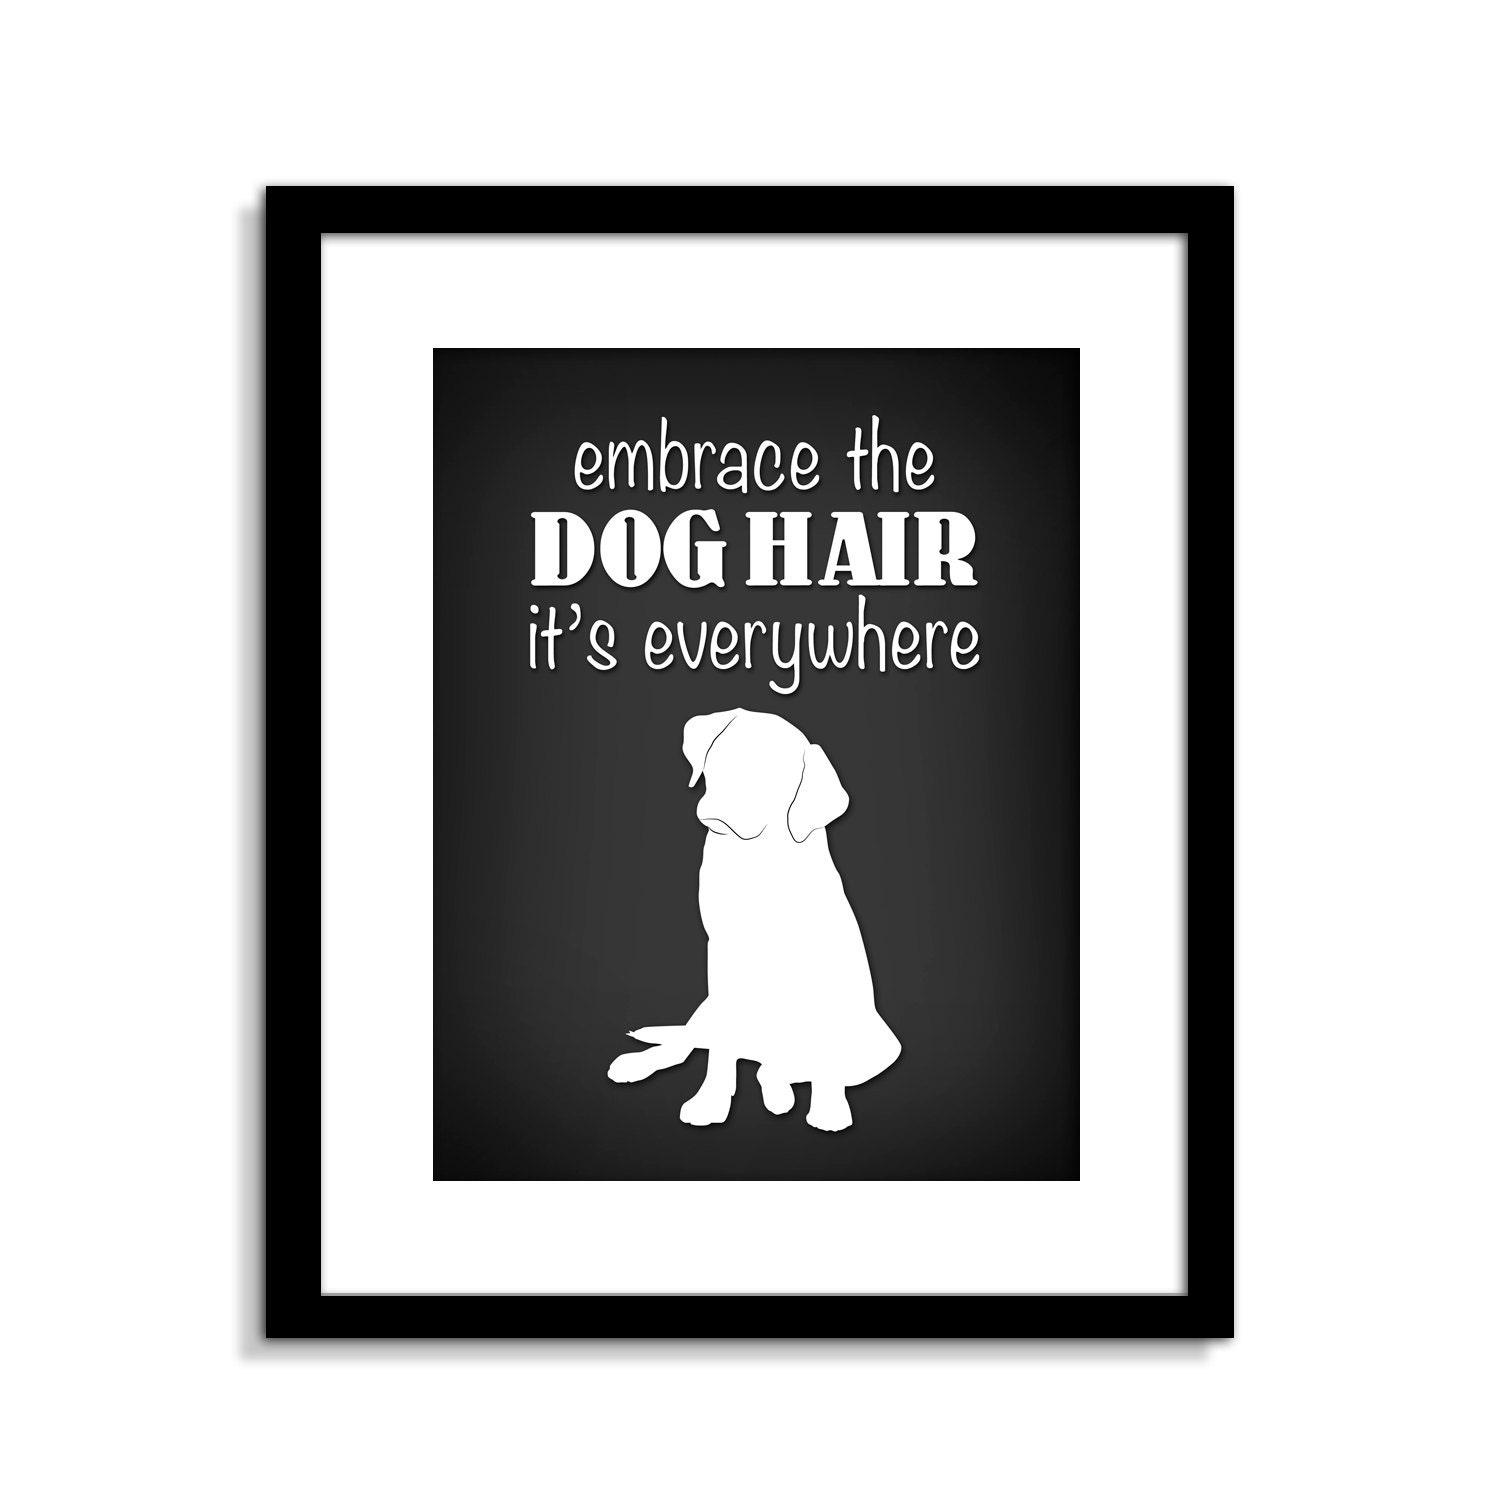 Funny Dog Wall Art Funny Dog Sign Embrace The Dog Hair Dog Etsy